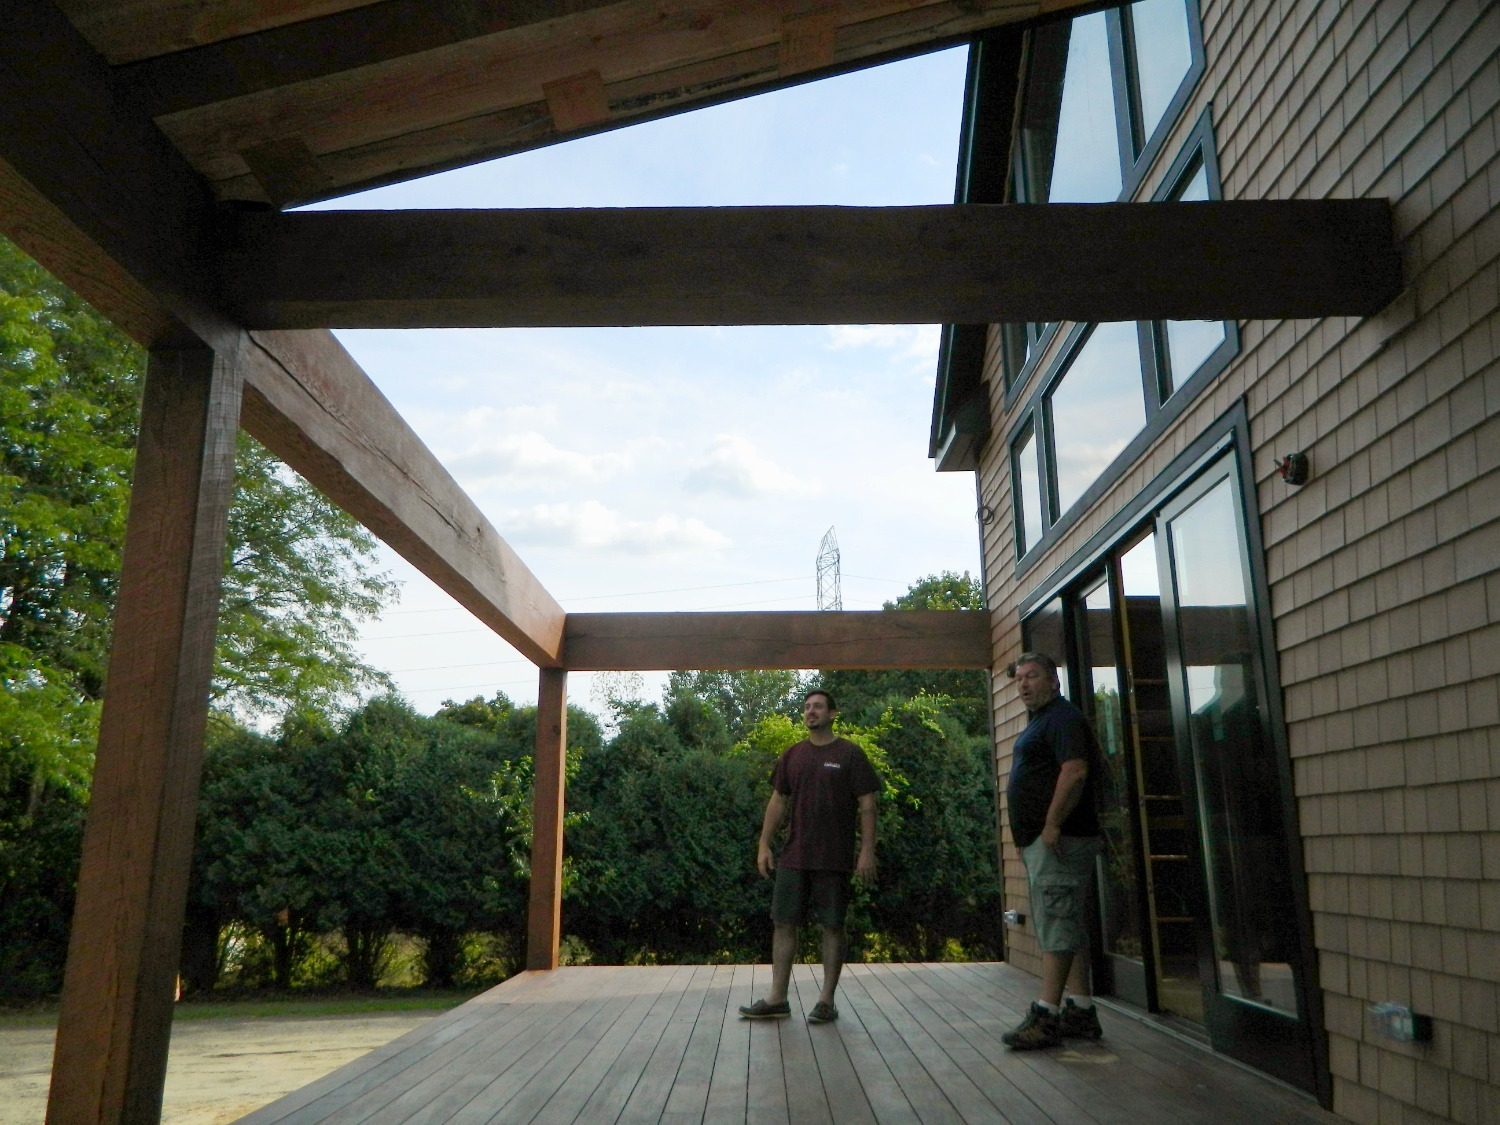 Exposed timber frame deck